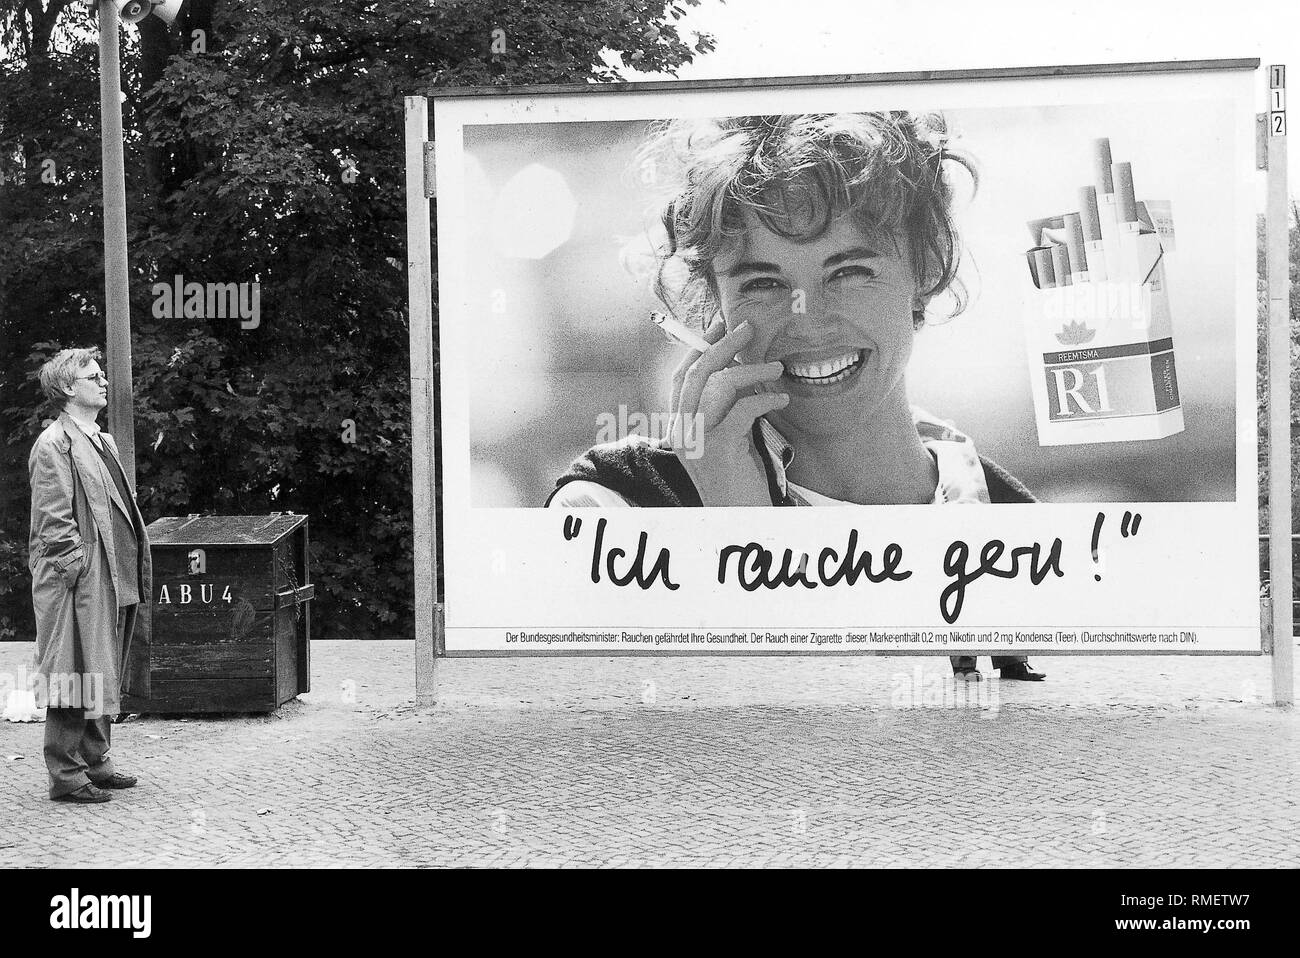 Poster advertising cigarettes of the brand 'R1' in the 80s: 'I like to smoke!'. - Stock Image